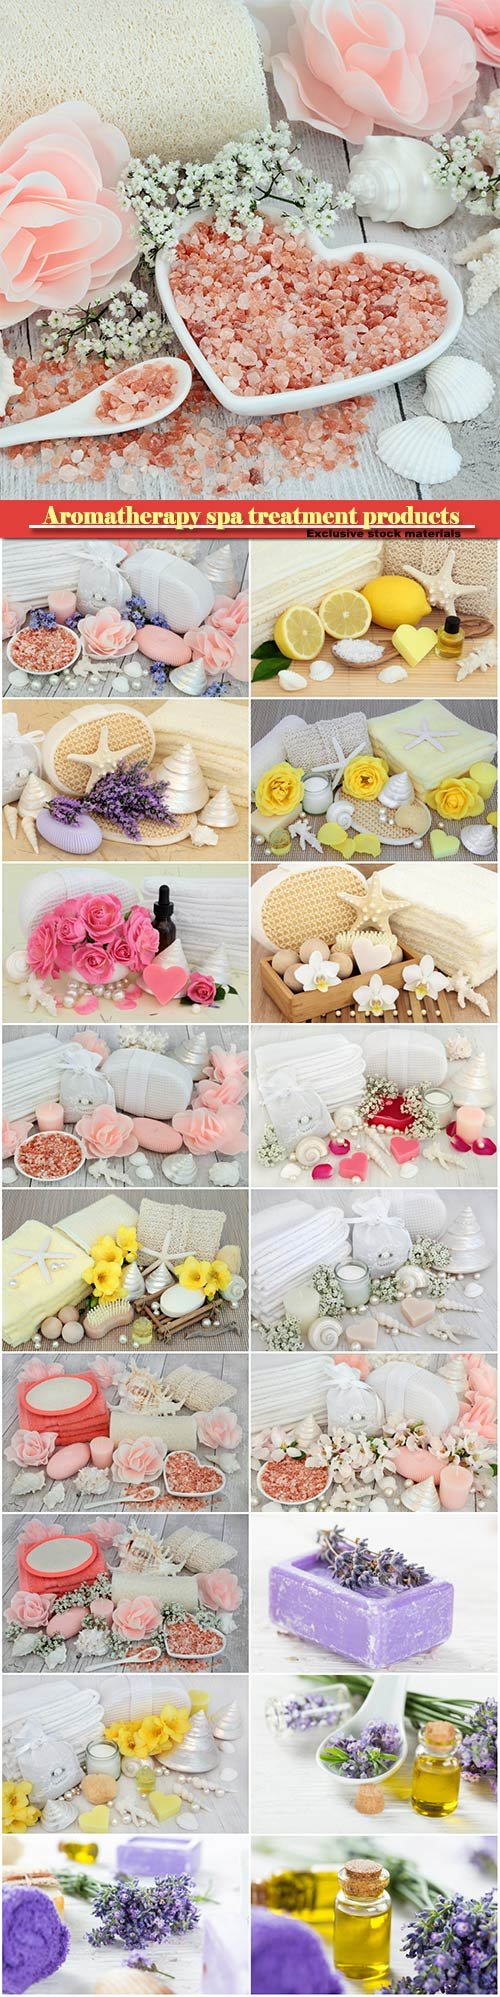 Aromatherapy spa treatment products with moisturiser, essence, freesia flowers, lavender flowers, shells and pearls